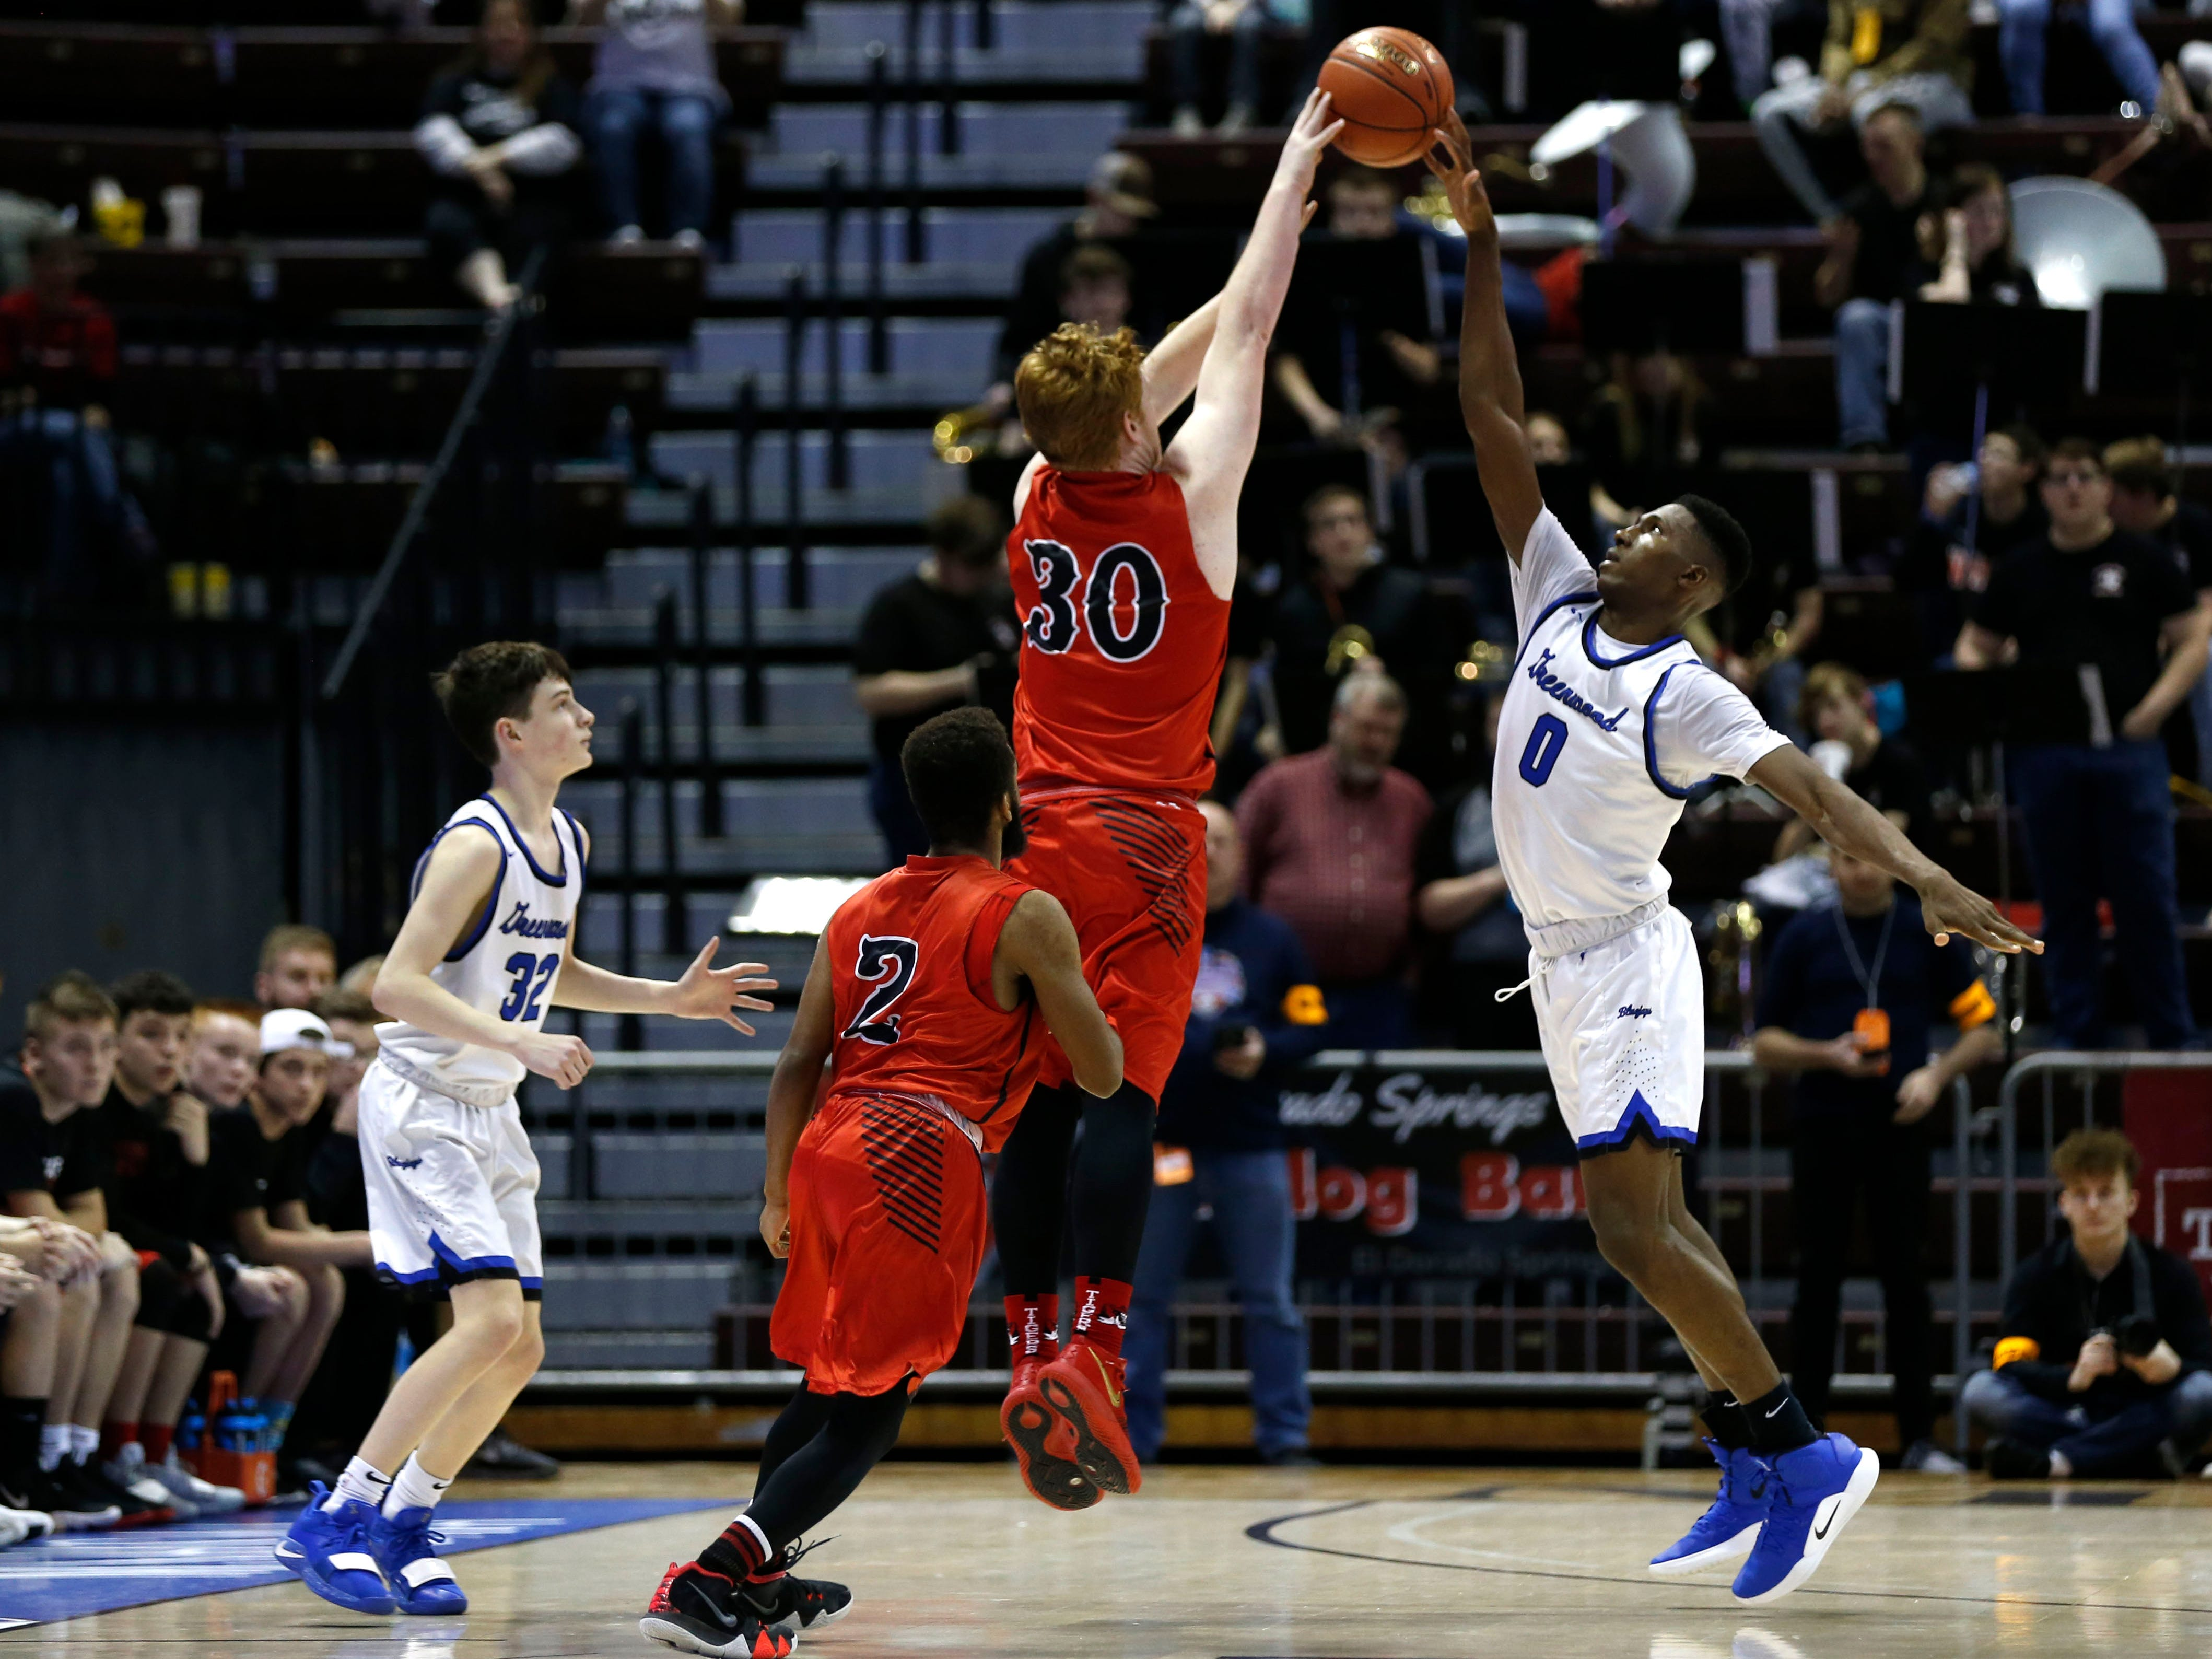 Greenwood's Aminu Mohammed tips a shot by Plattsburg's Garrett Stephens in the final seconds of the game giving the Blue Jays the win over the Tigers during the semifinal round of Class 2 state basketball at JQH Arena on Friday, March 8, 2019.